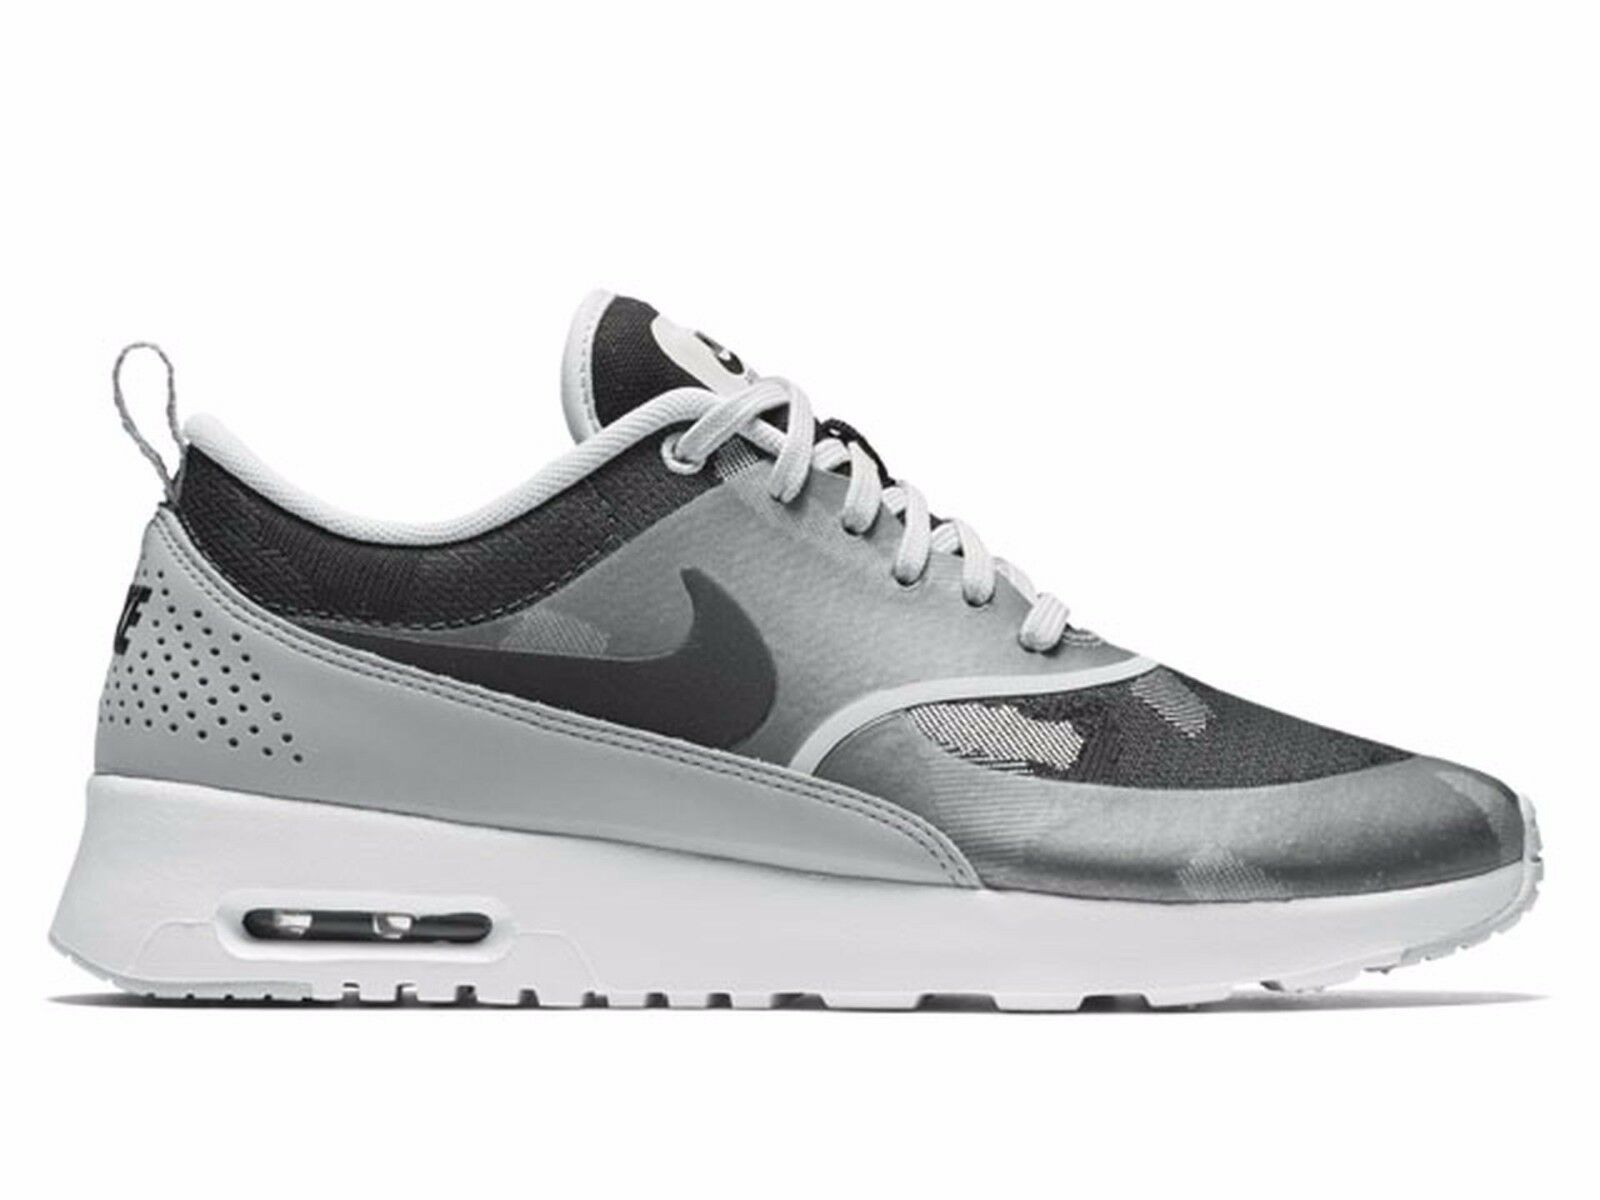 Nike Air Max Thea JCRD Pure Platinum Black Wolf Grey 844955-002 Wmn Sz 11